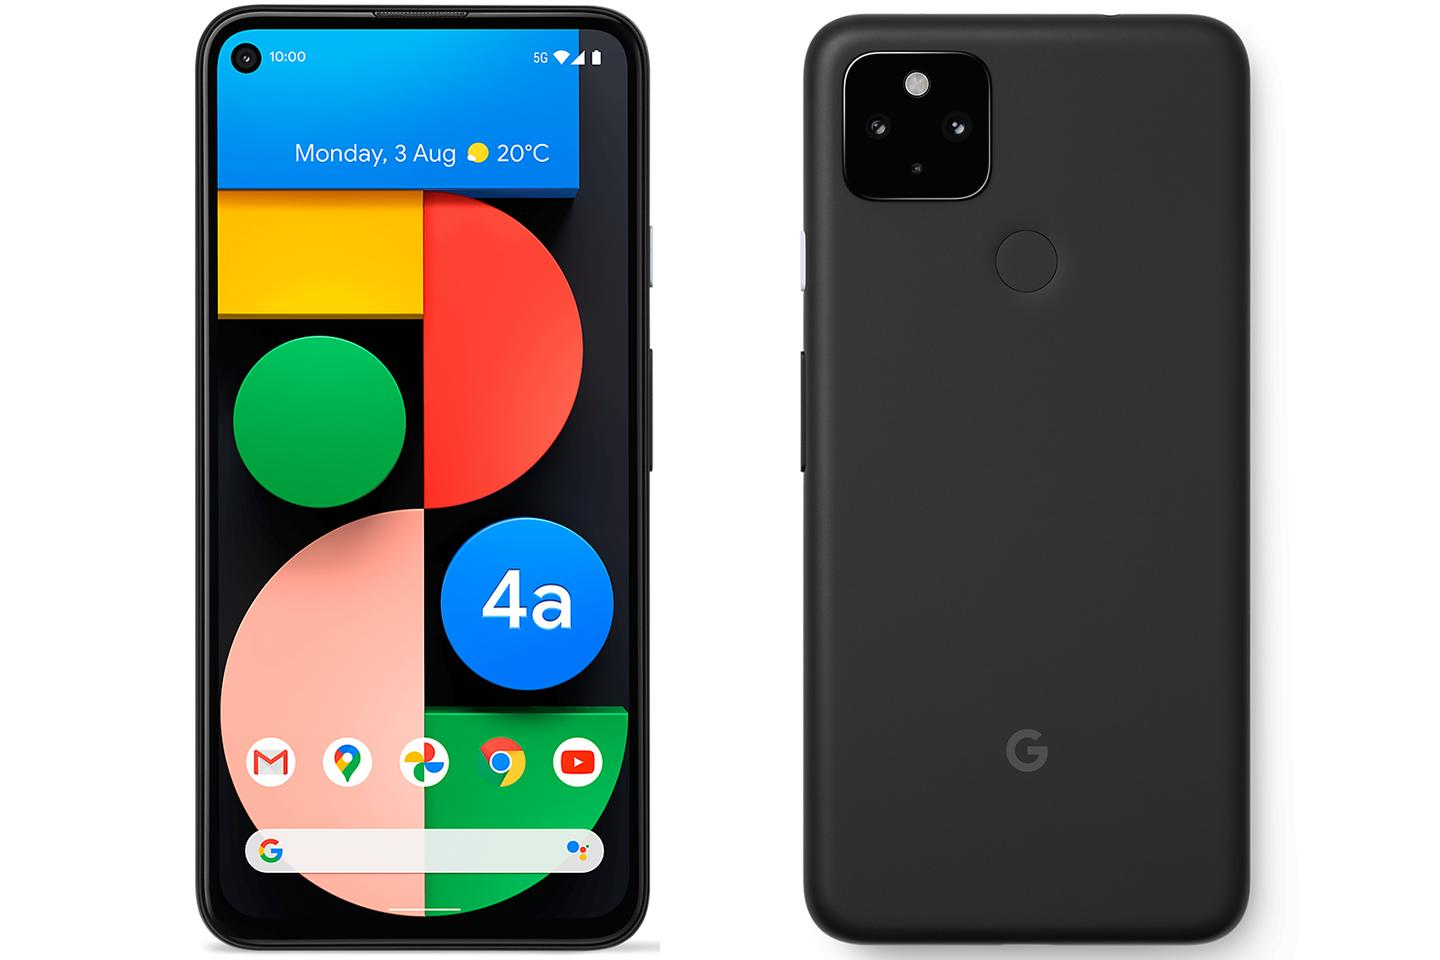 The Google Pixel 4a 5G hits the right balance between performance and price